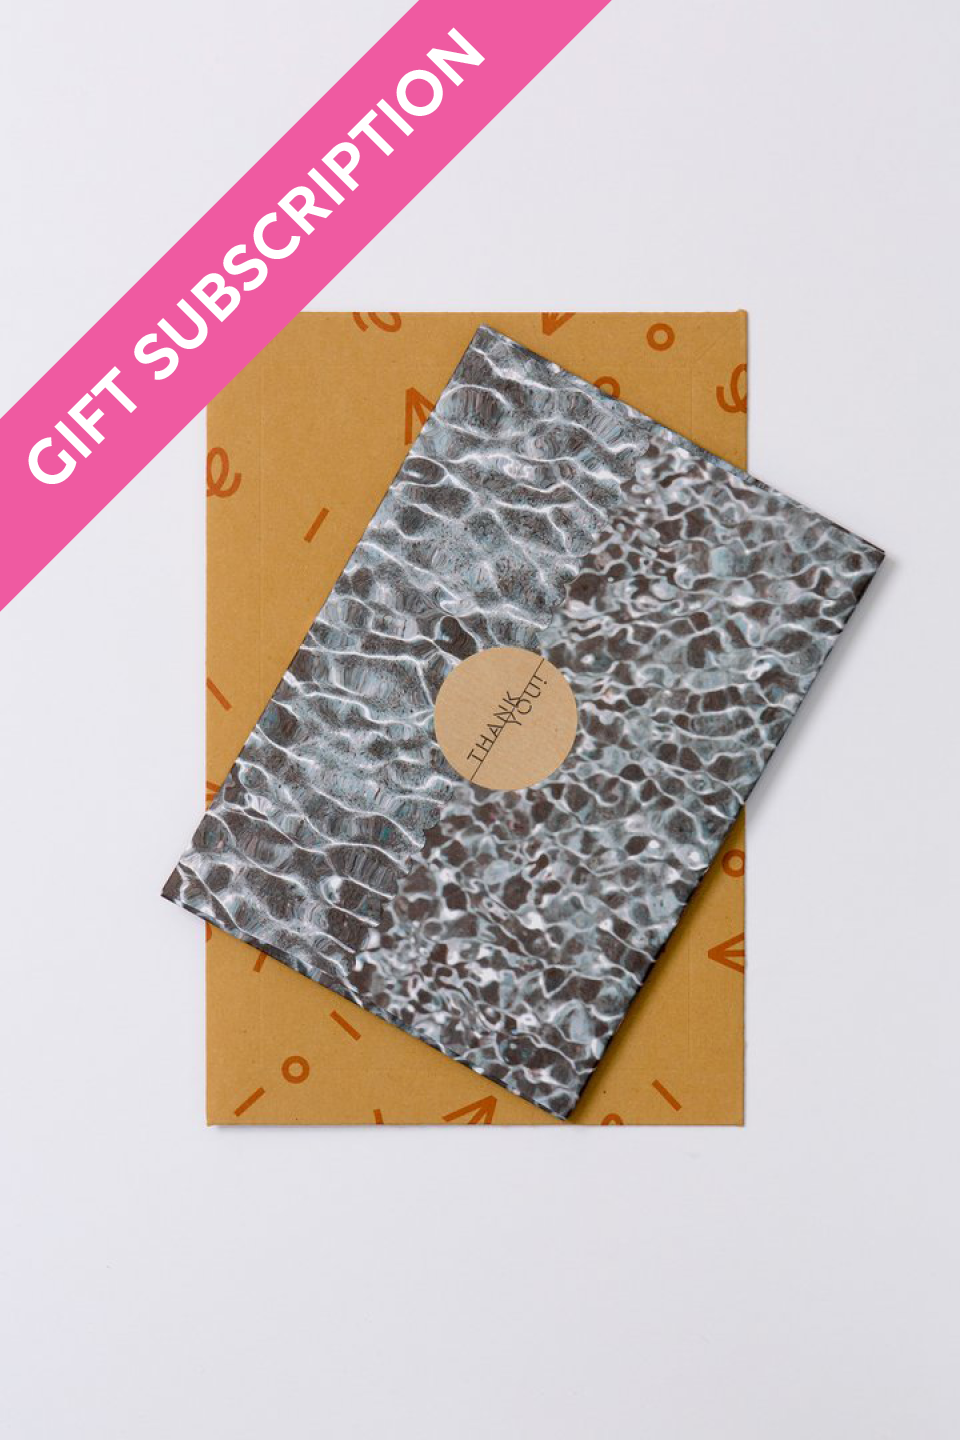 Gift Subscription: Issues 36-39 - Print & Digital